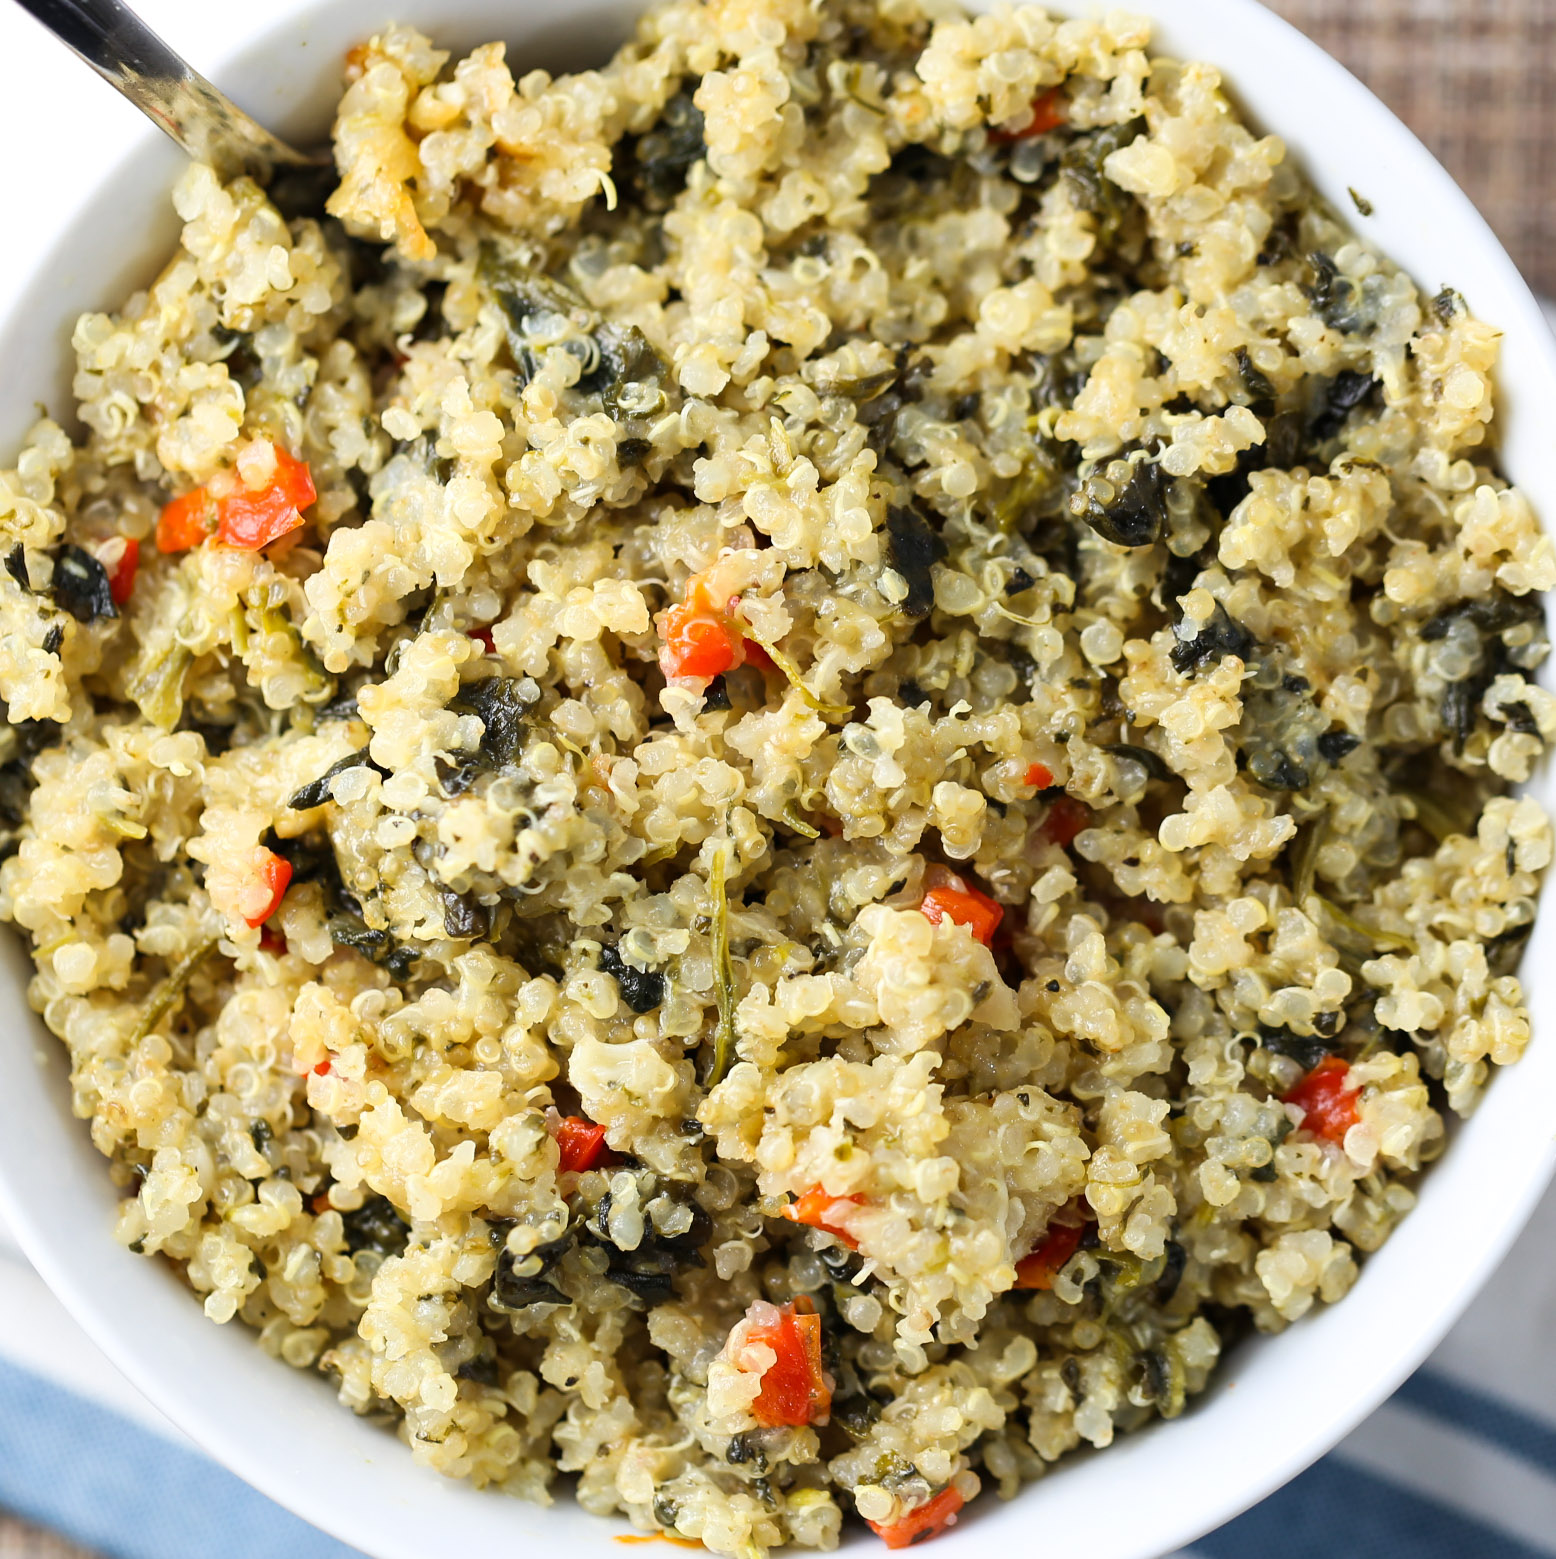 Spinach & Cheese Quinoa Casserole